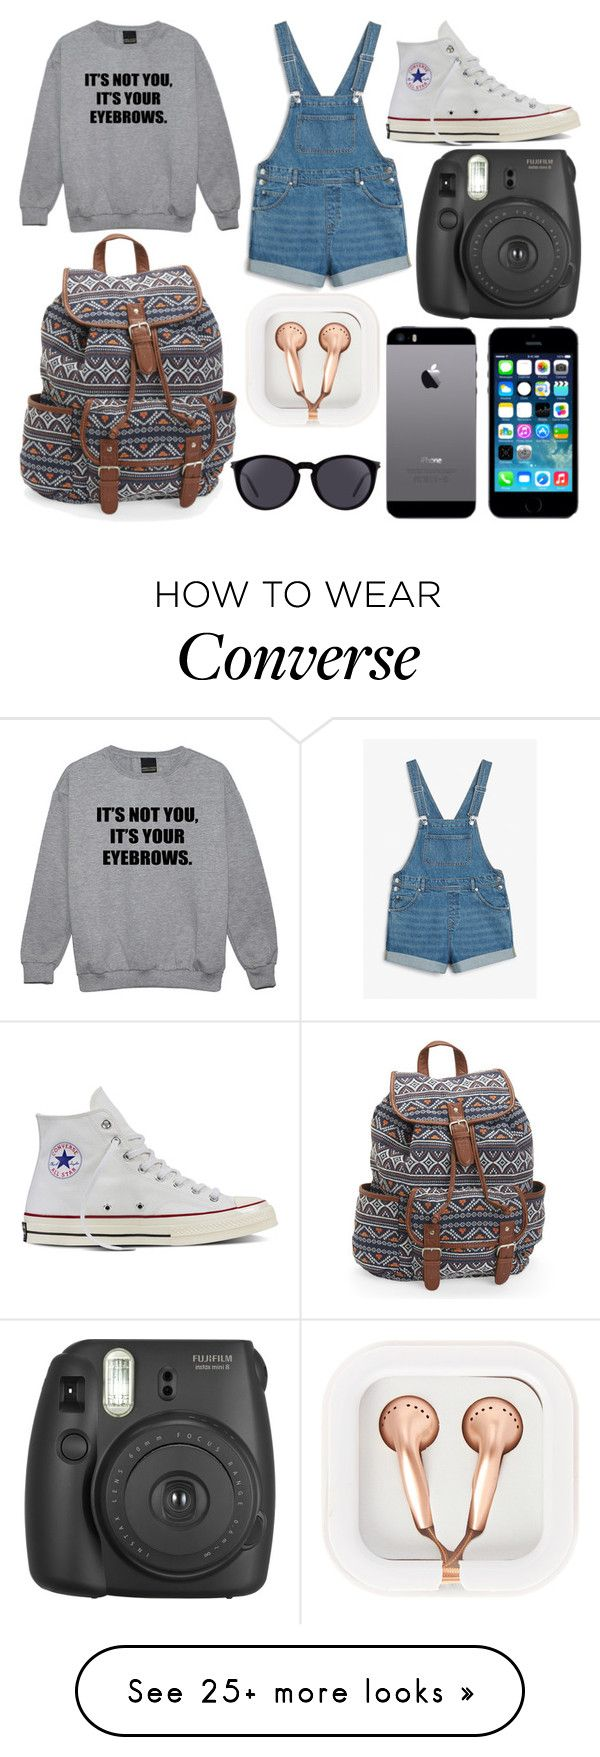 """School Day"" by susanna-trad on Polyvore featuring Minga, Monki, Converse, Aéropostale, Fujifilm, FingerPrint Jewellry, claire's and Yves Saint Laurent"